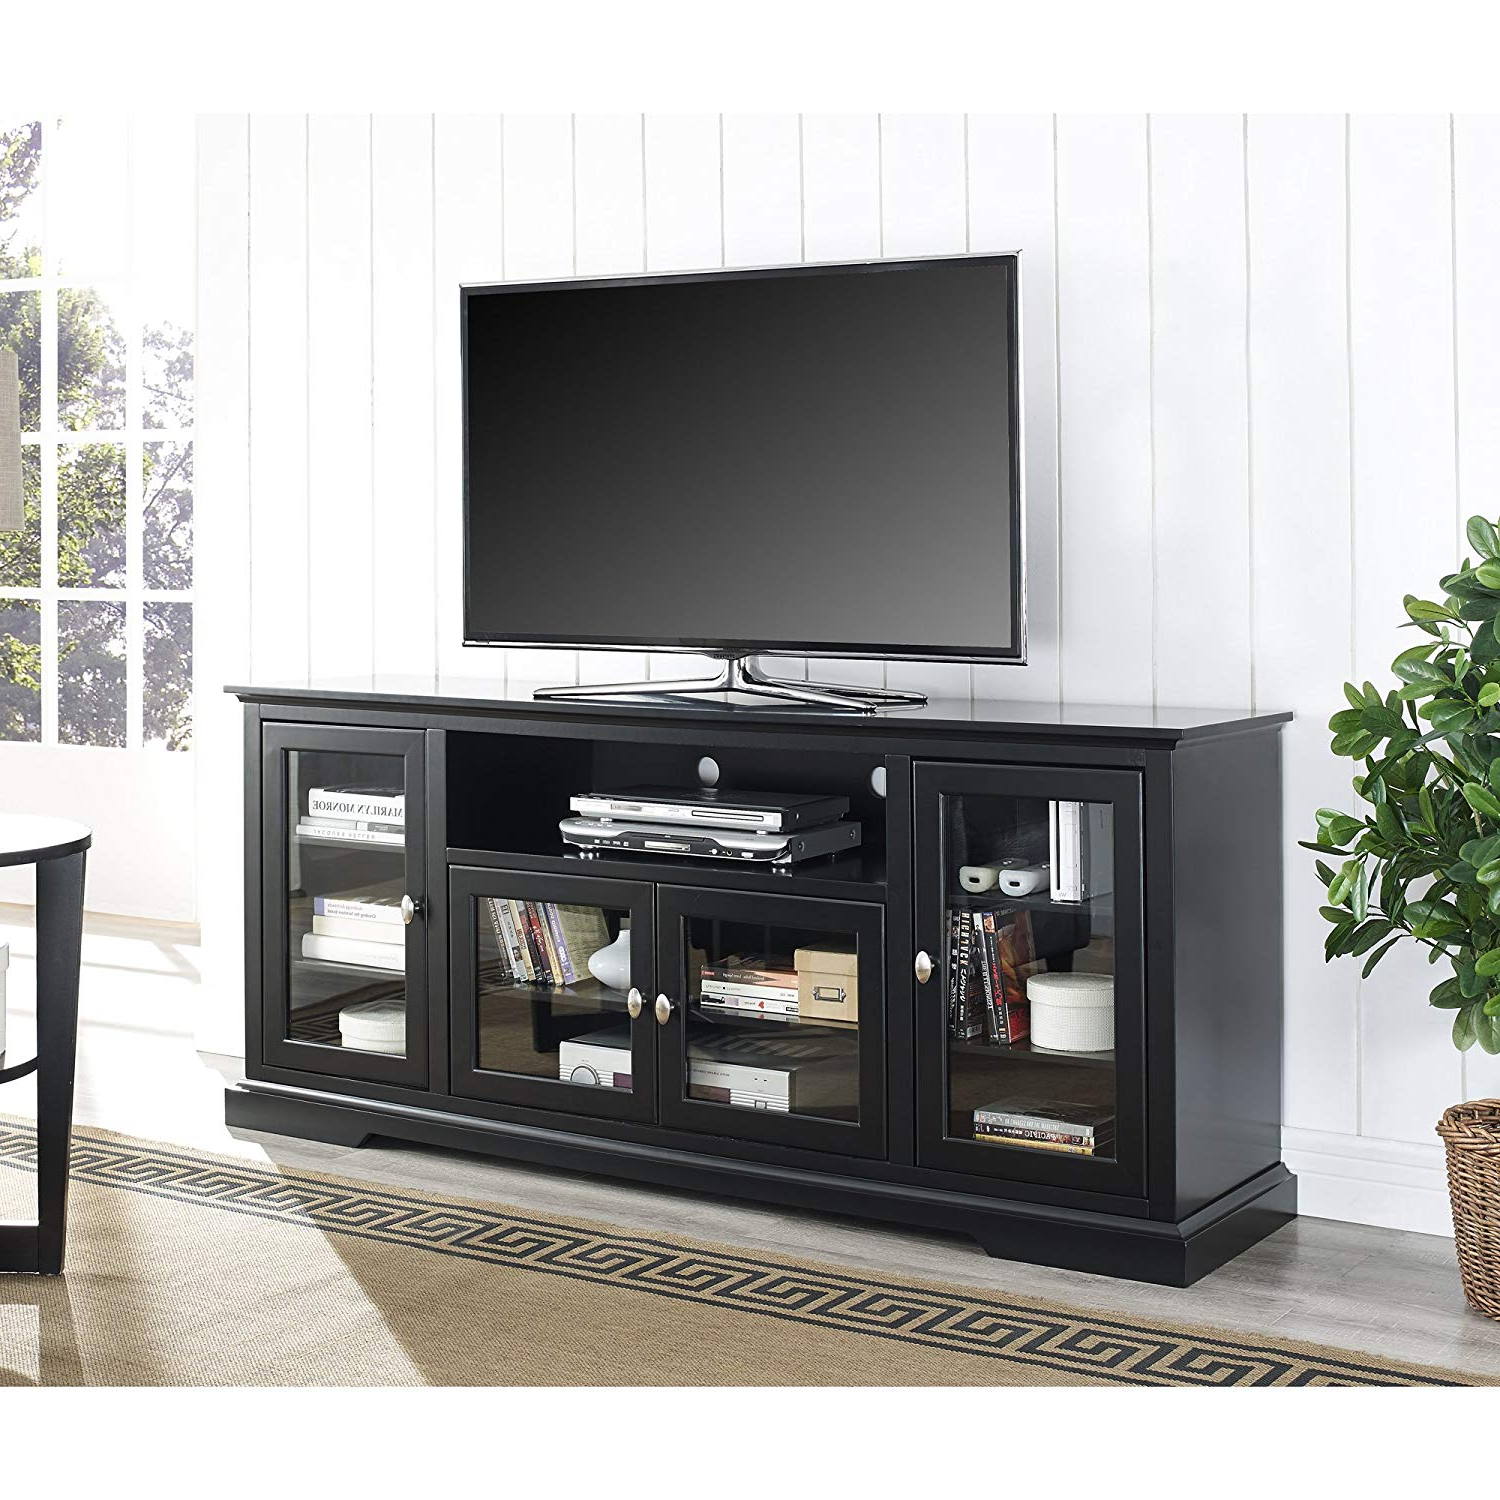 """Fashionable Wooden Tv Stands For Flat Screens Inside Amazon: We Furniture 70"""" Highboy Style Wood Tv Stand Console (View 20 of 20)"""